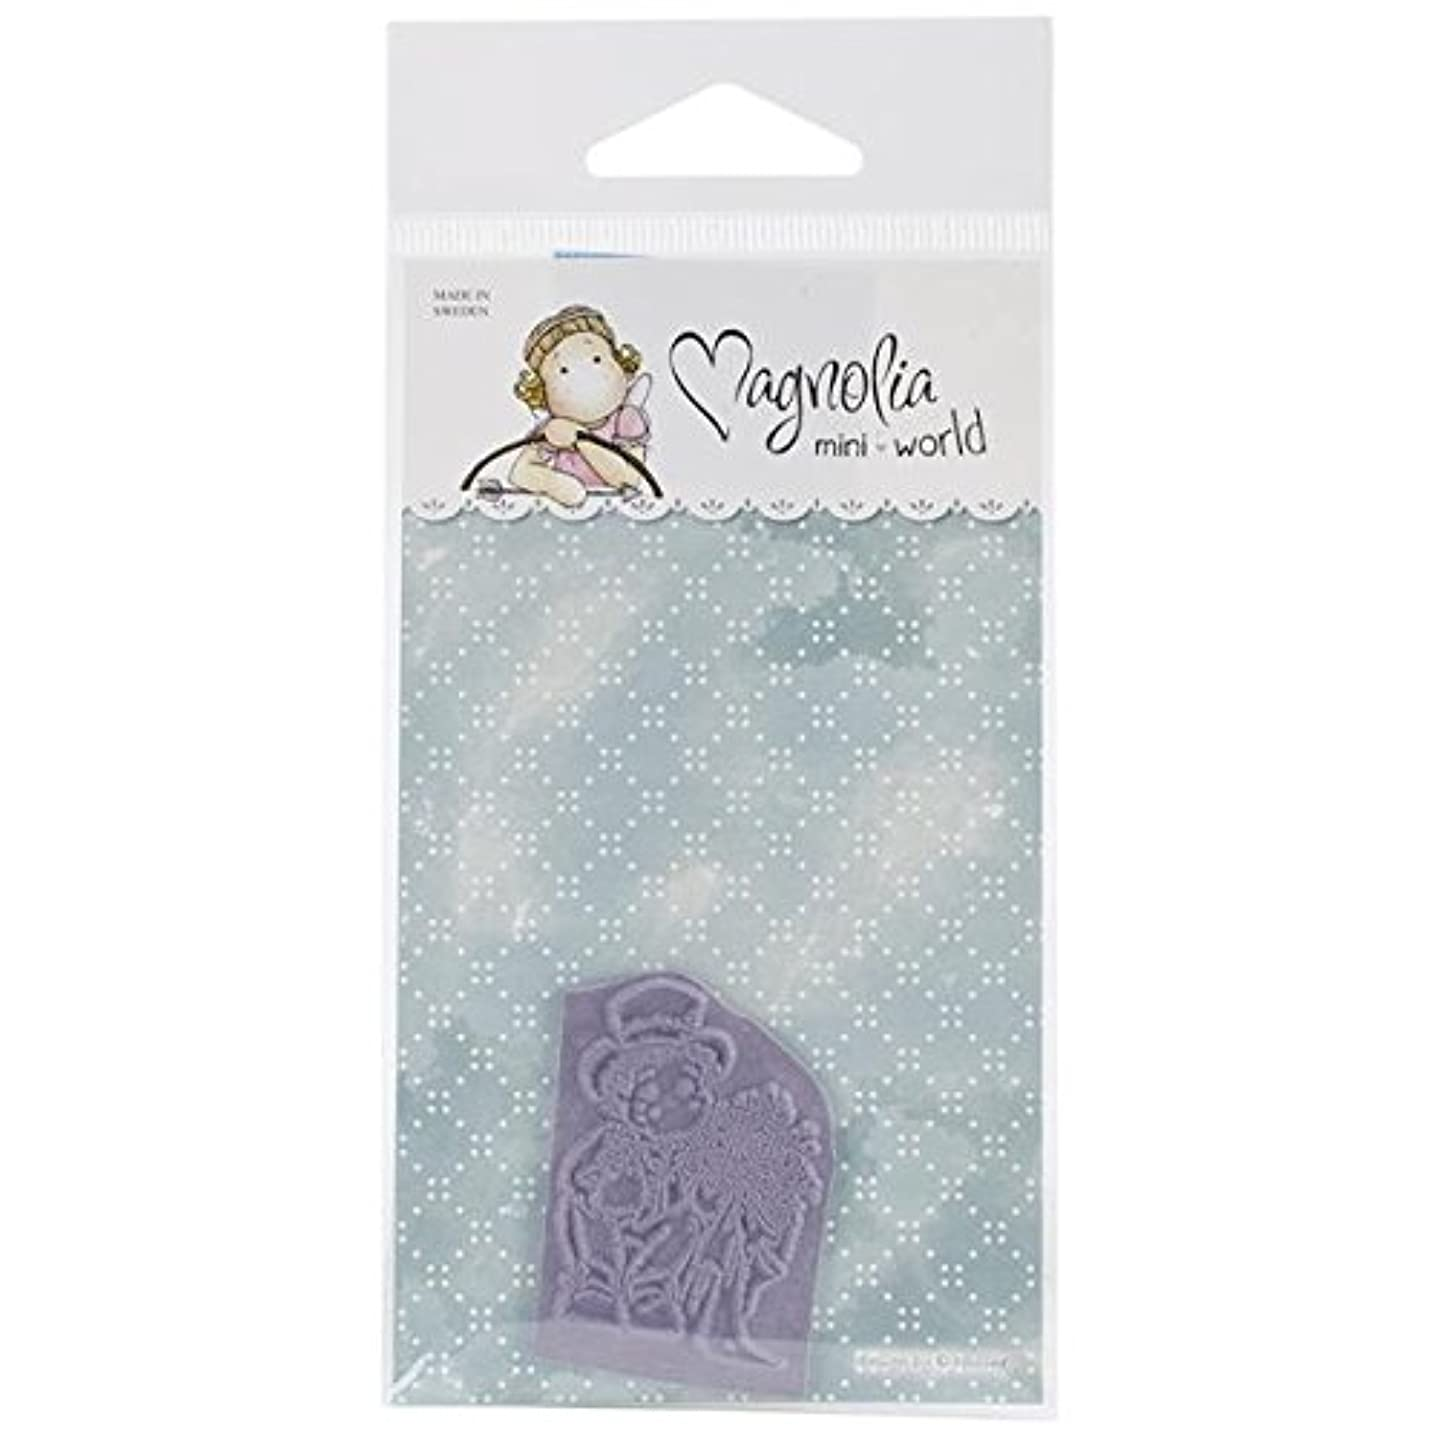 Magnolia Mini Special Moments Cling Stamp, 2.75 by 5.75-Inch, Where is My Bride